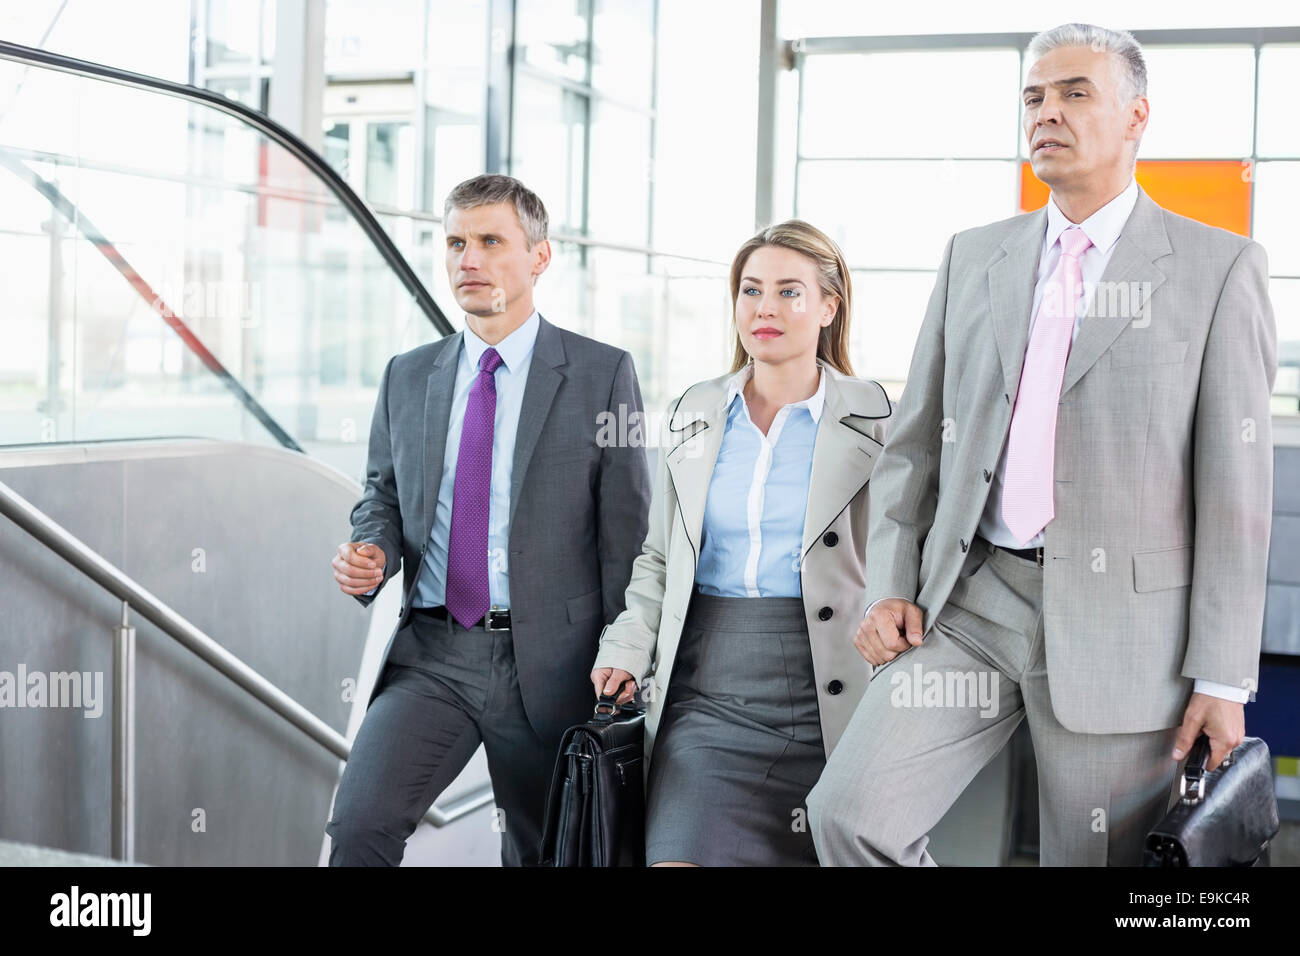 Businesspeople walking up stairs in train station Stock Photo